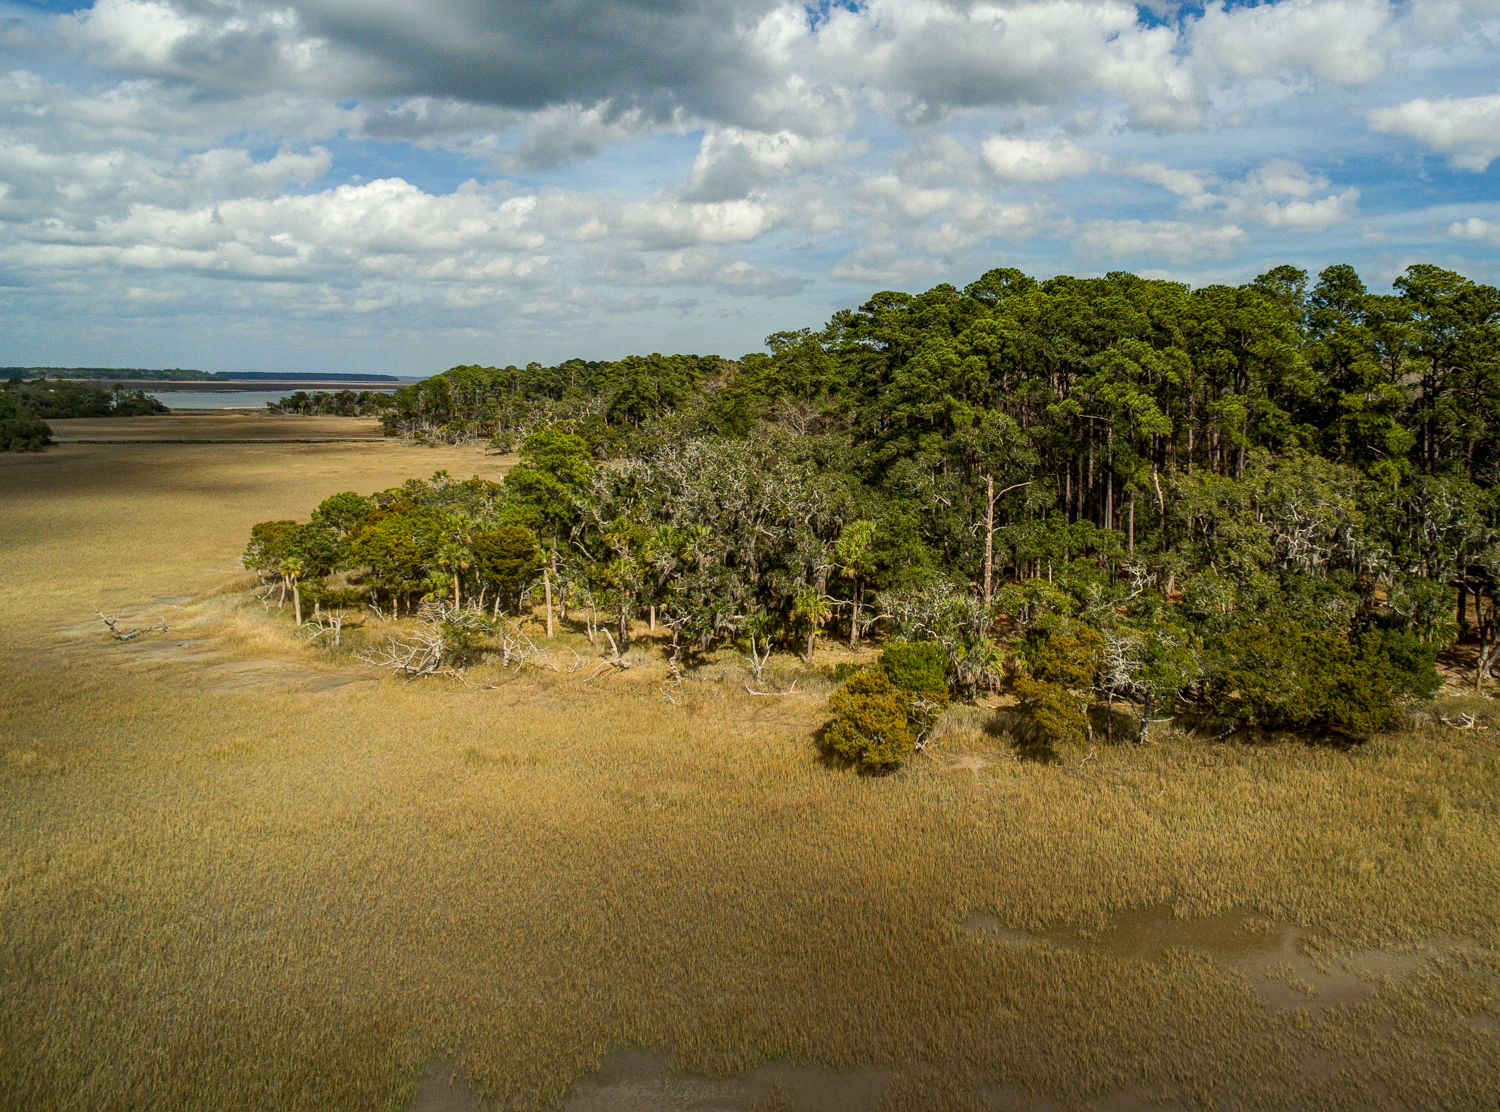 lot30-drone-from-south.jpg